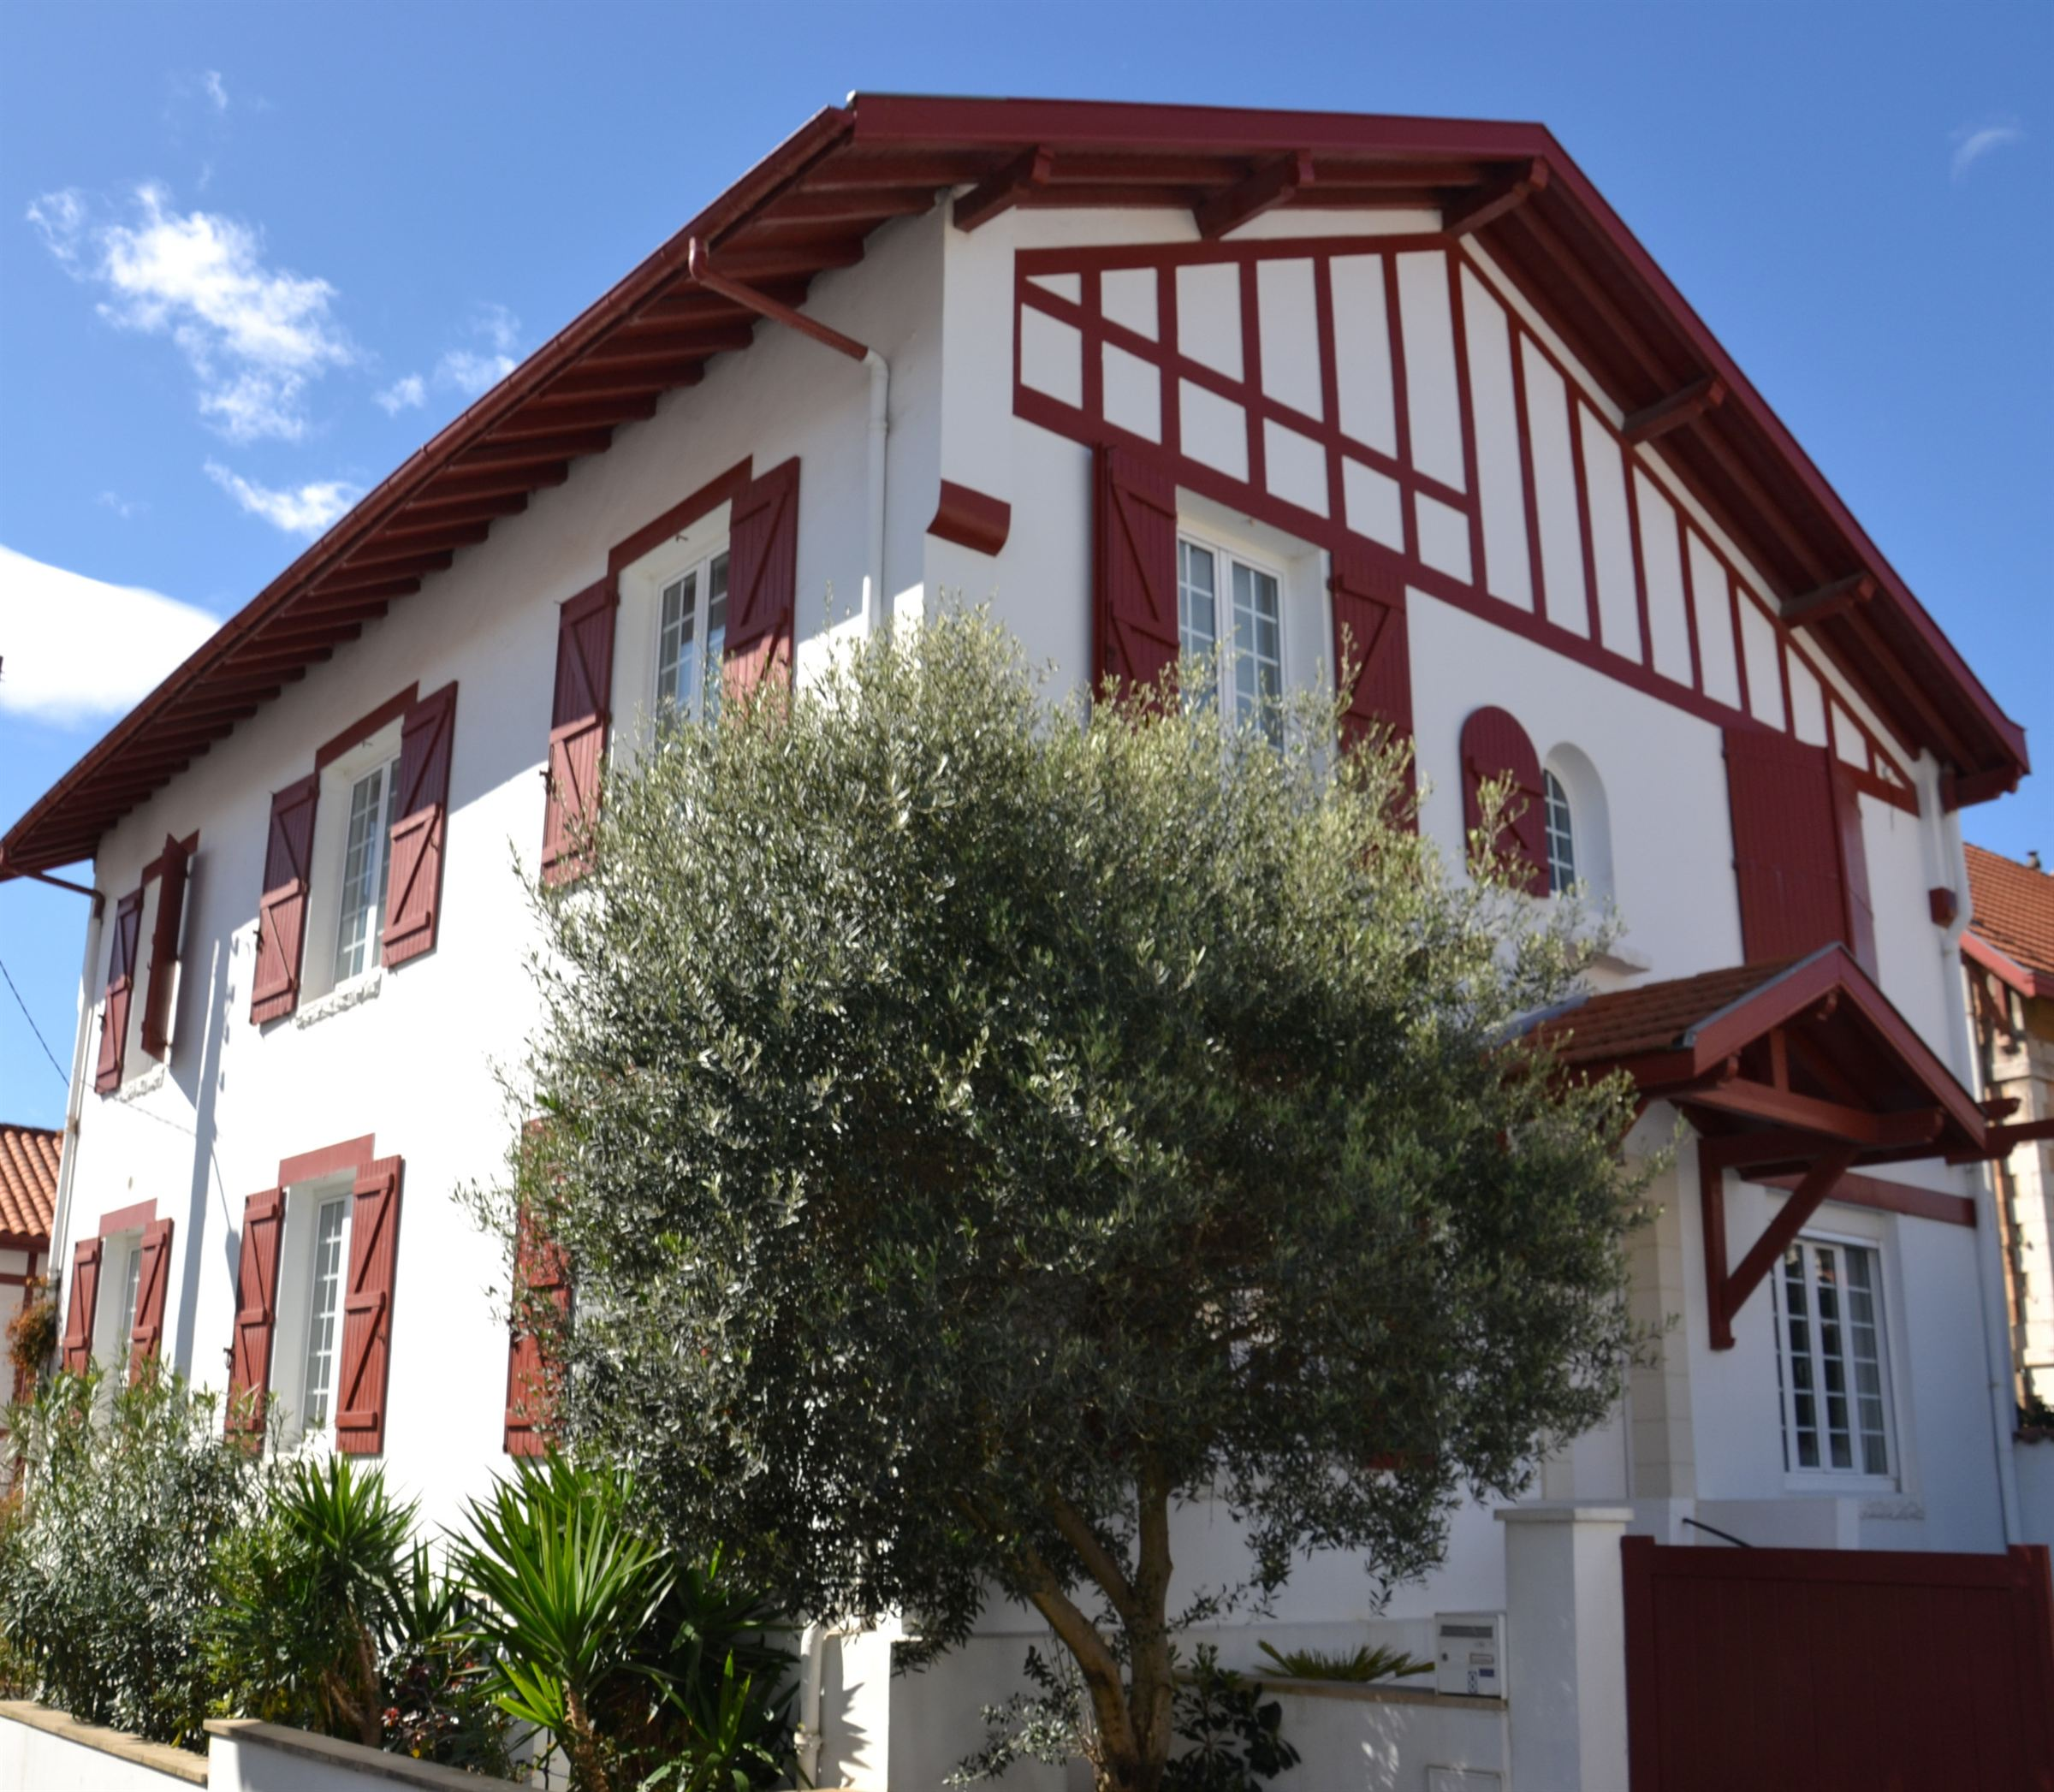 Single Family Home for Sale at Biarritz Saint Charles Biarritz, Aquitaine, 64200 France